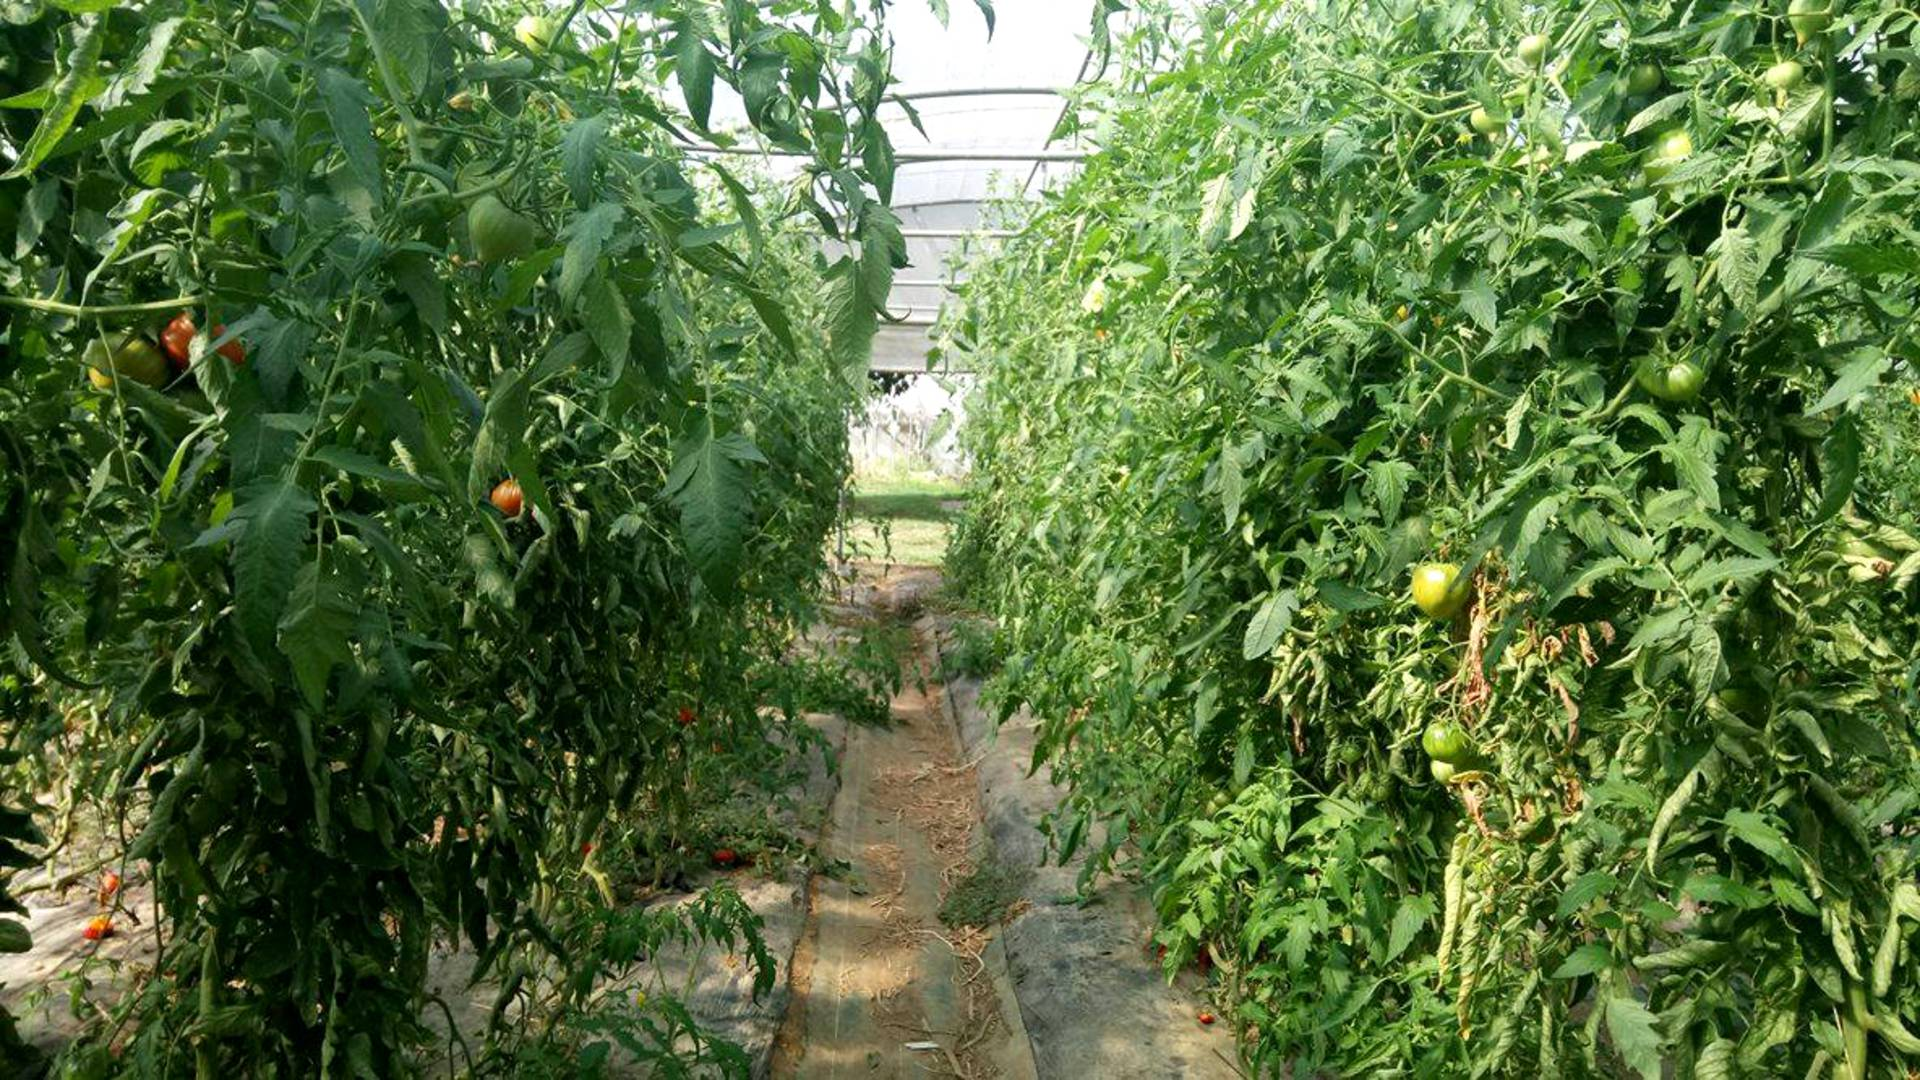 Tomato greenhouse at the cueillette de Seresville